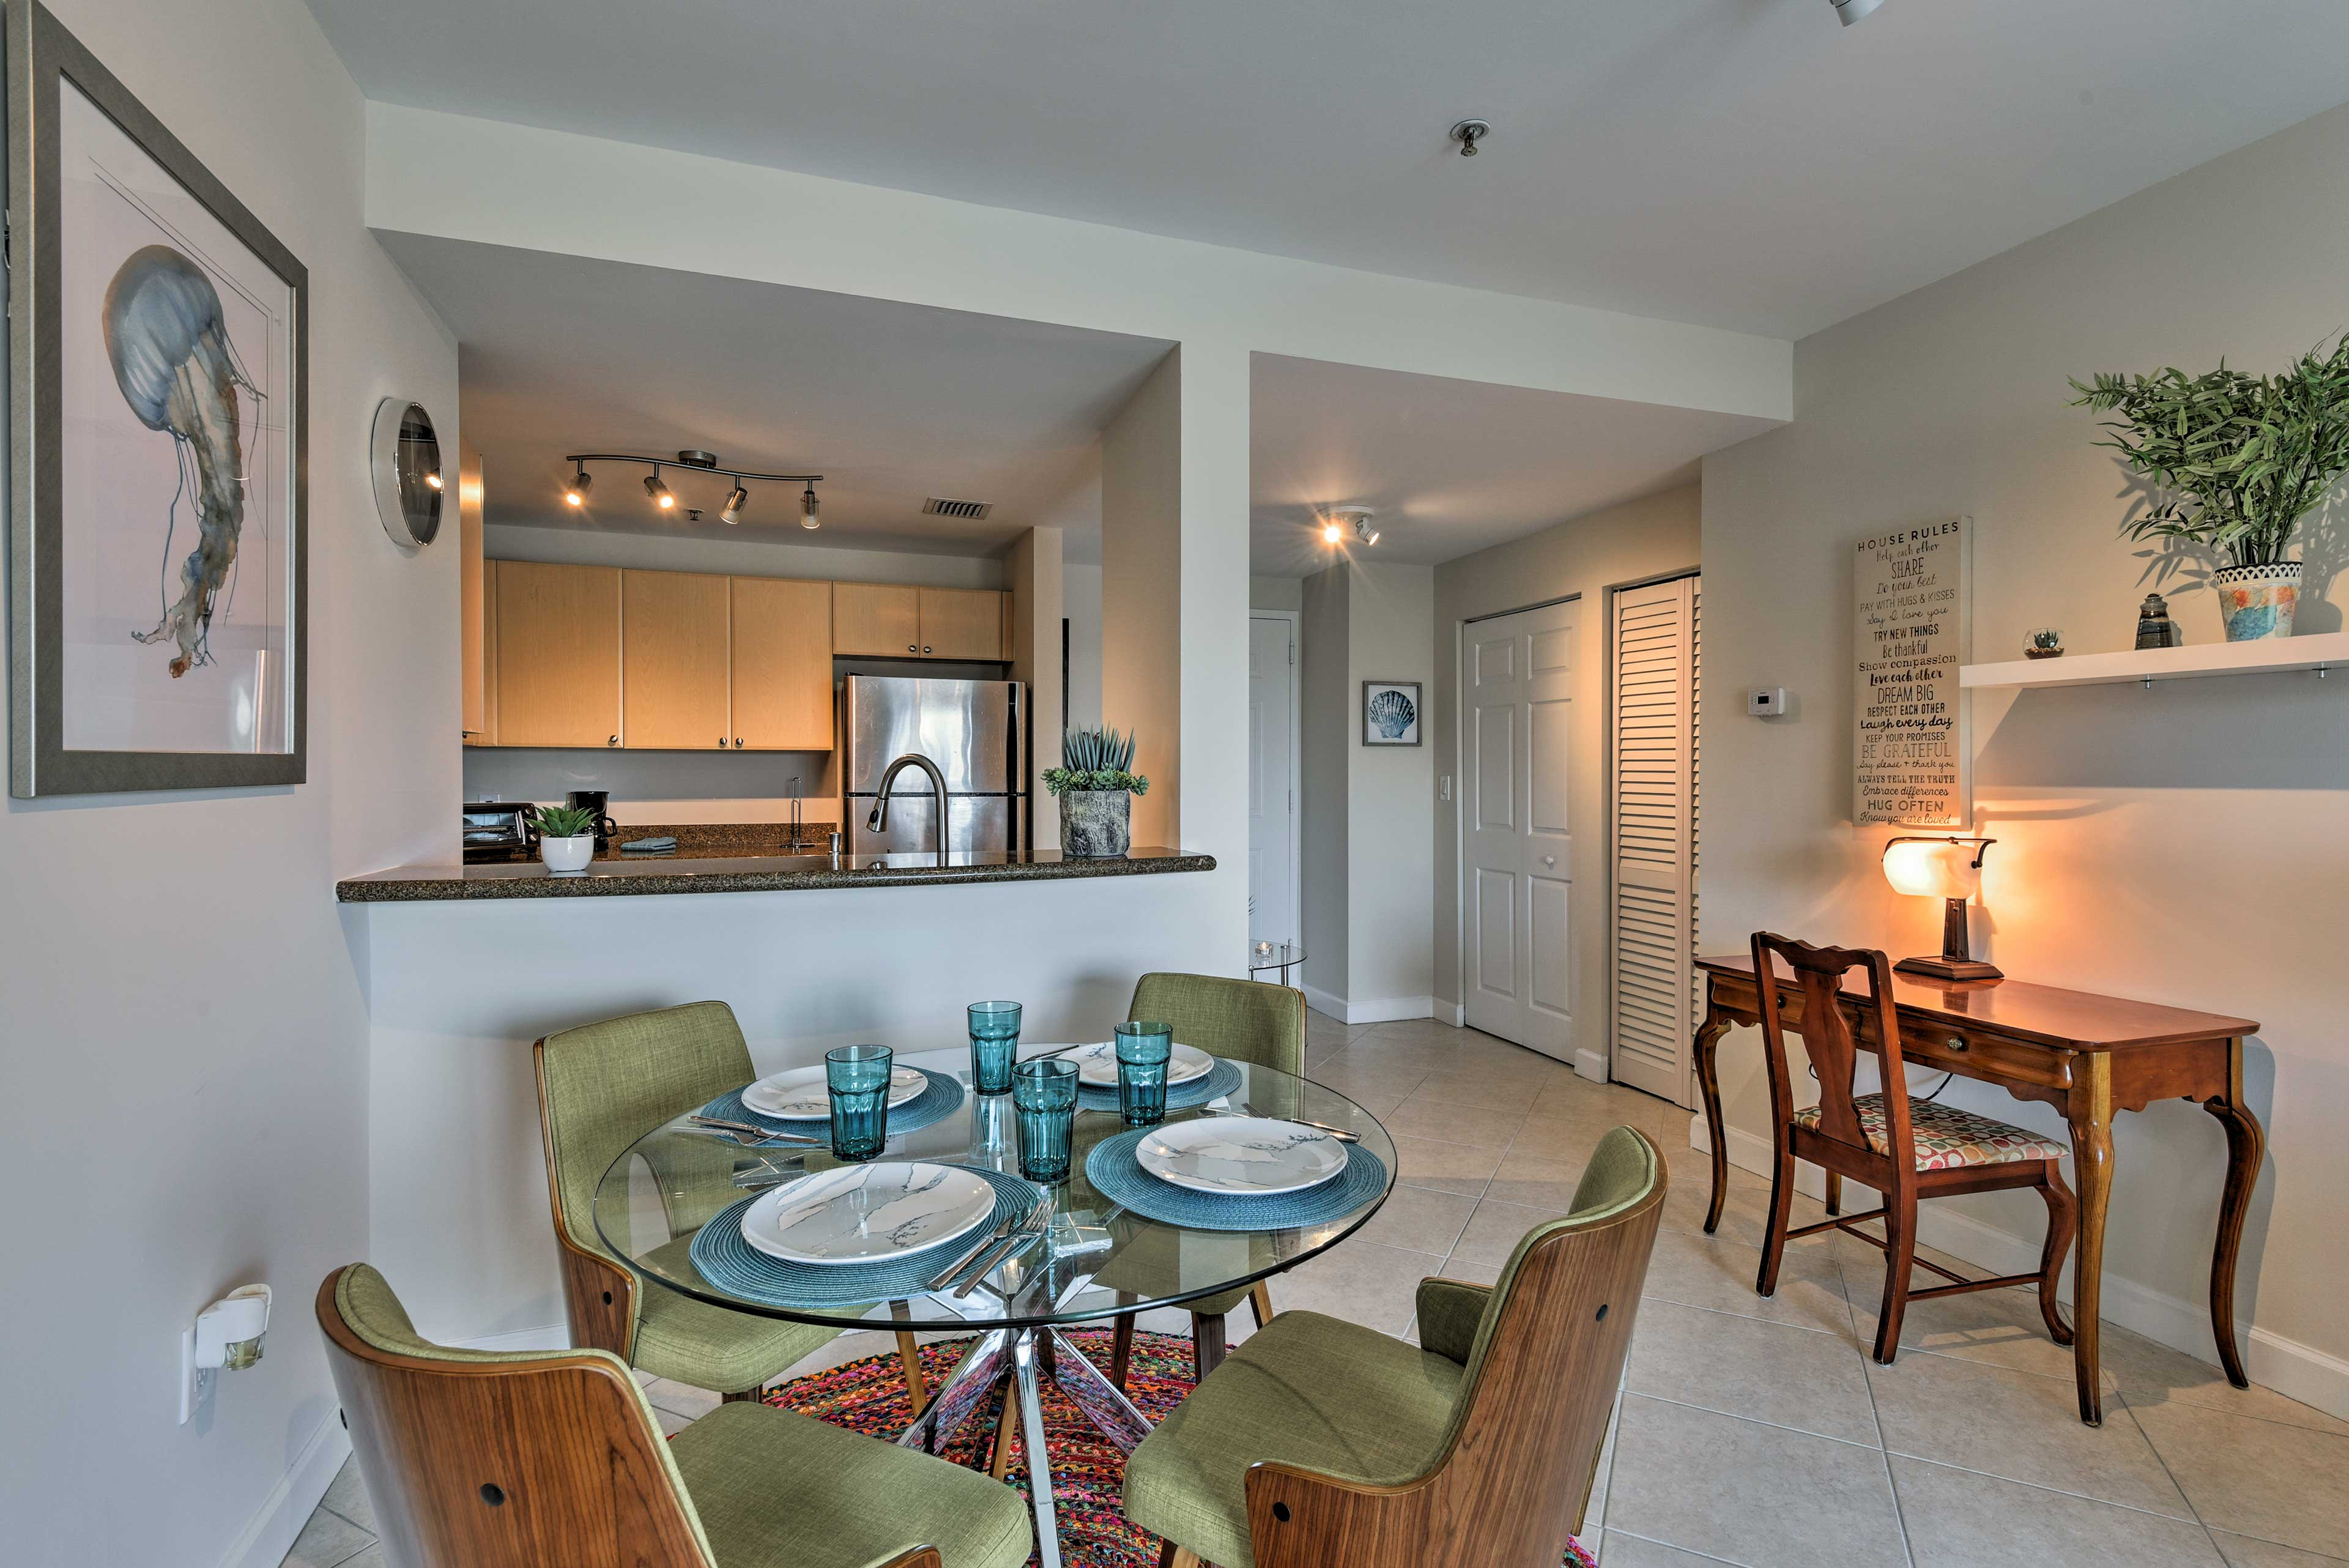 Discuss plans for the day over breakfast at the 4-person dining table.